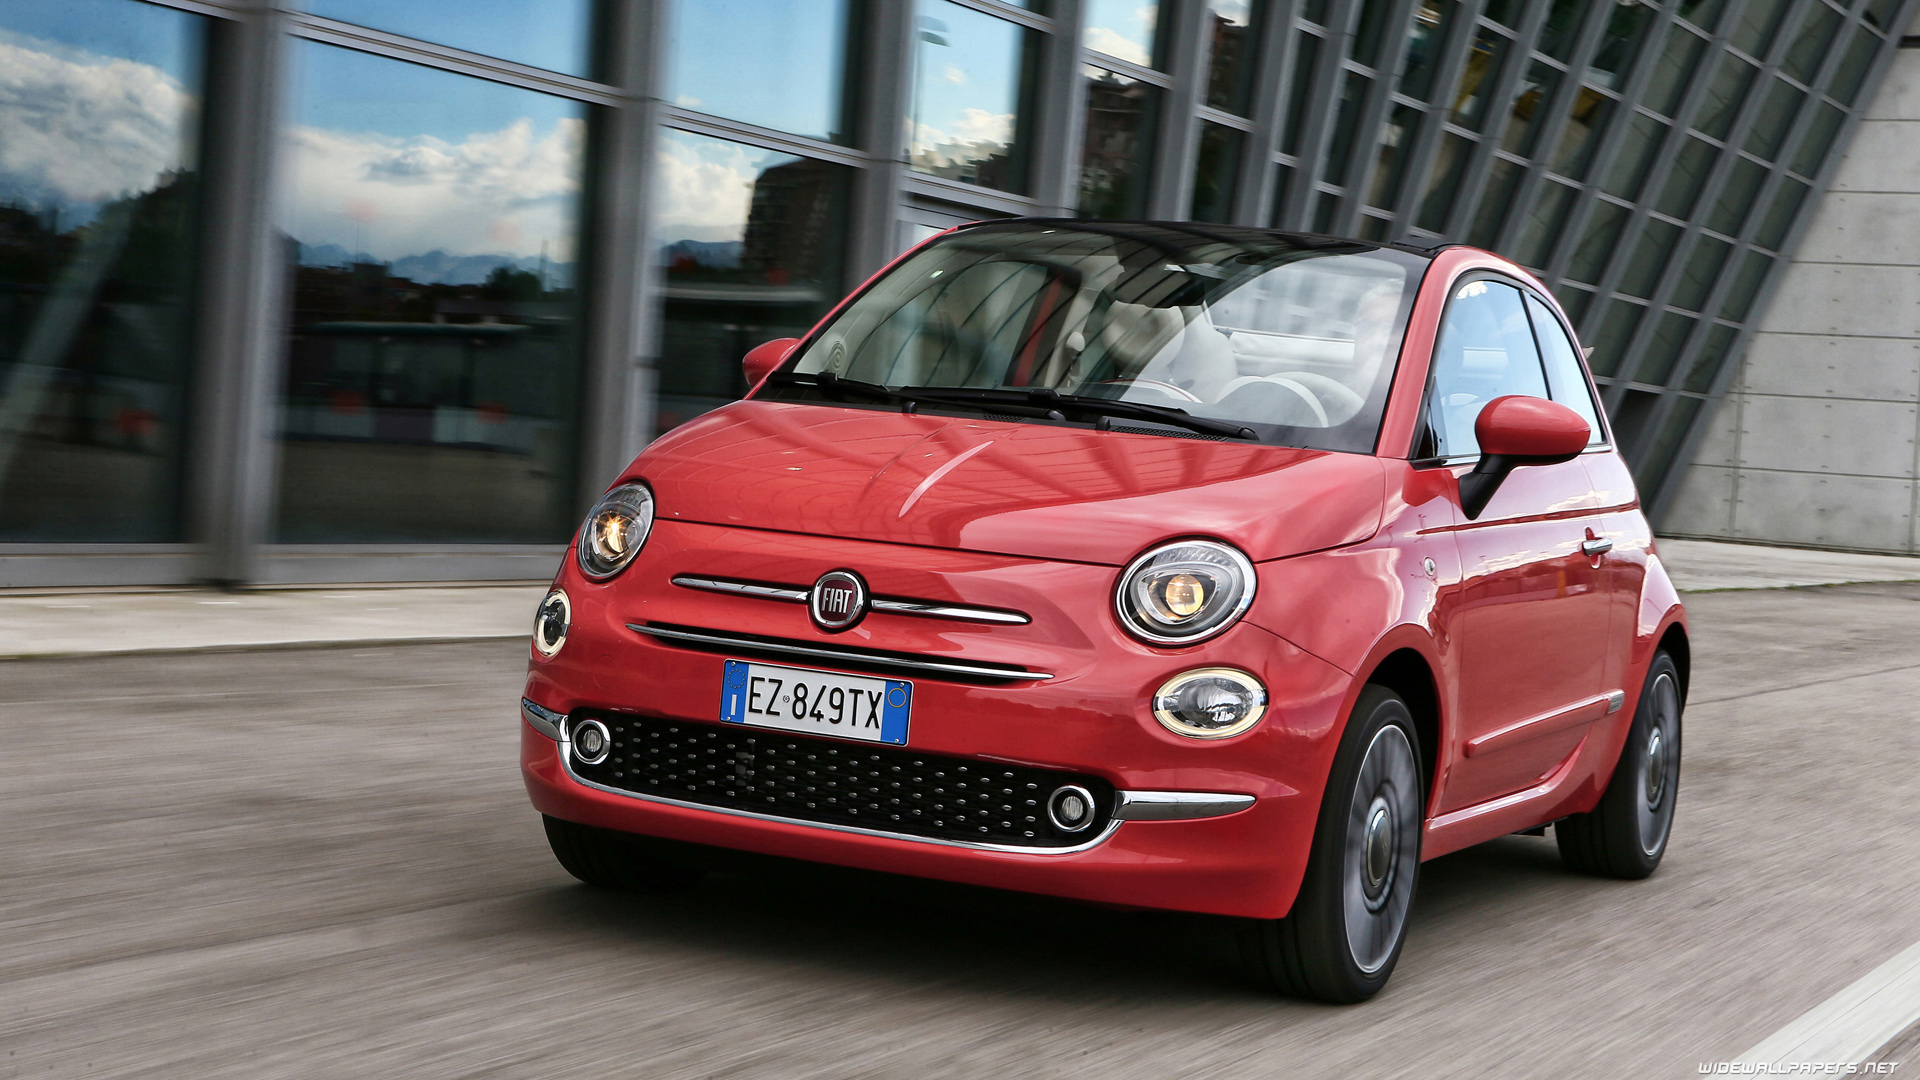 Fiat 500 Cars Desktop Wallpapers Hd And Wide Wallpapers